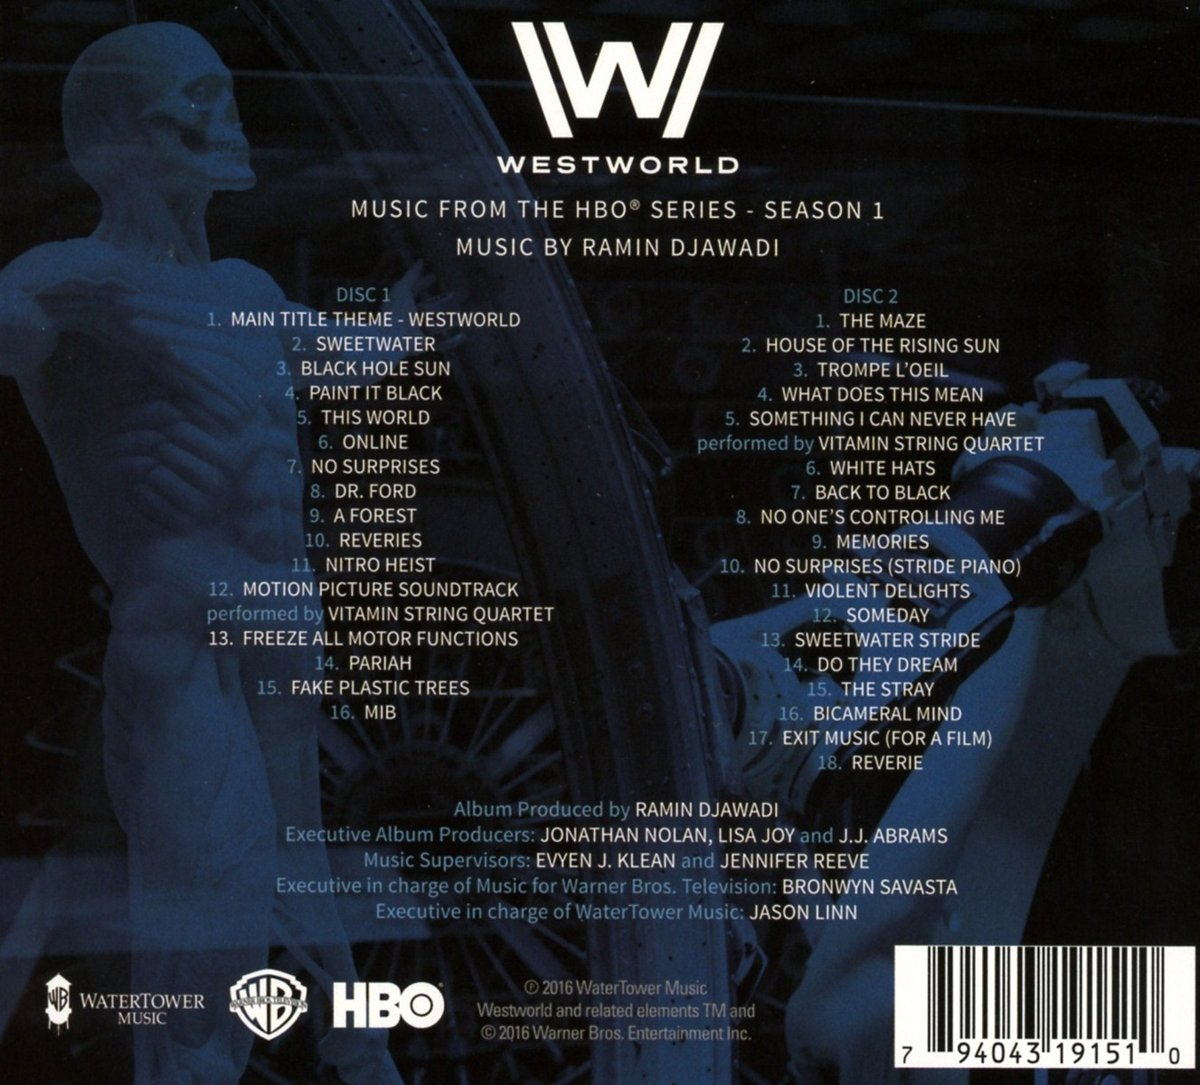 westworld season 1 music from the hbo series o s t amazon co uk music